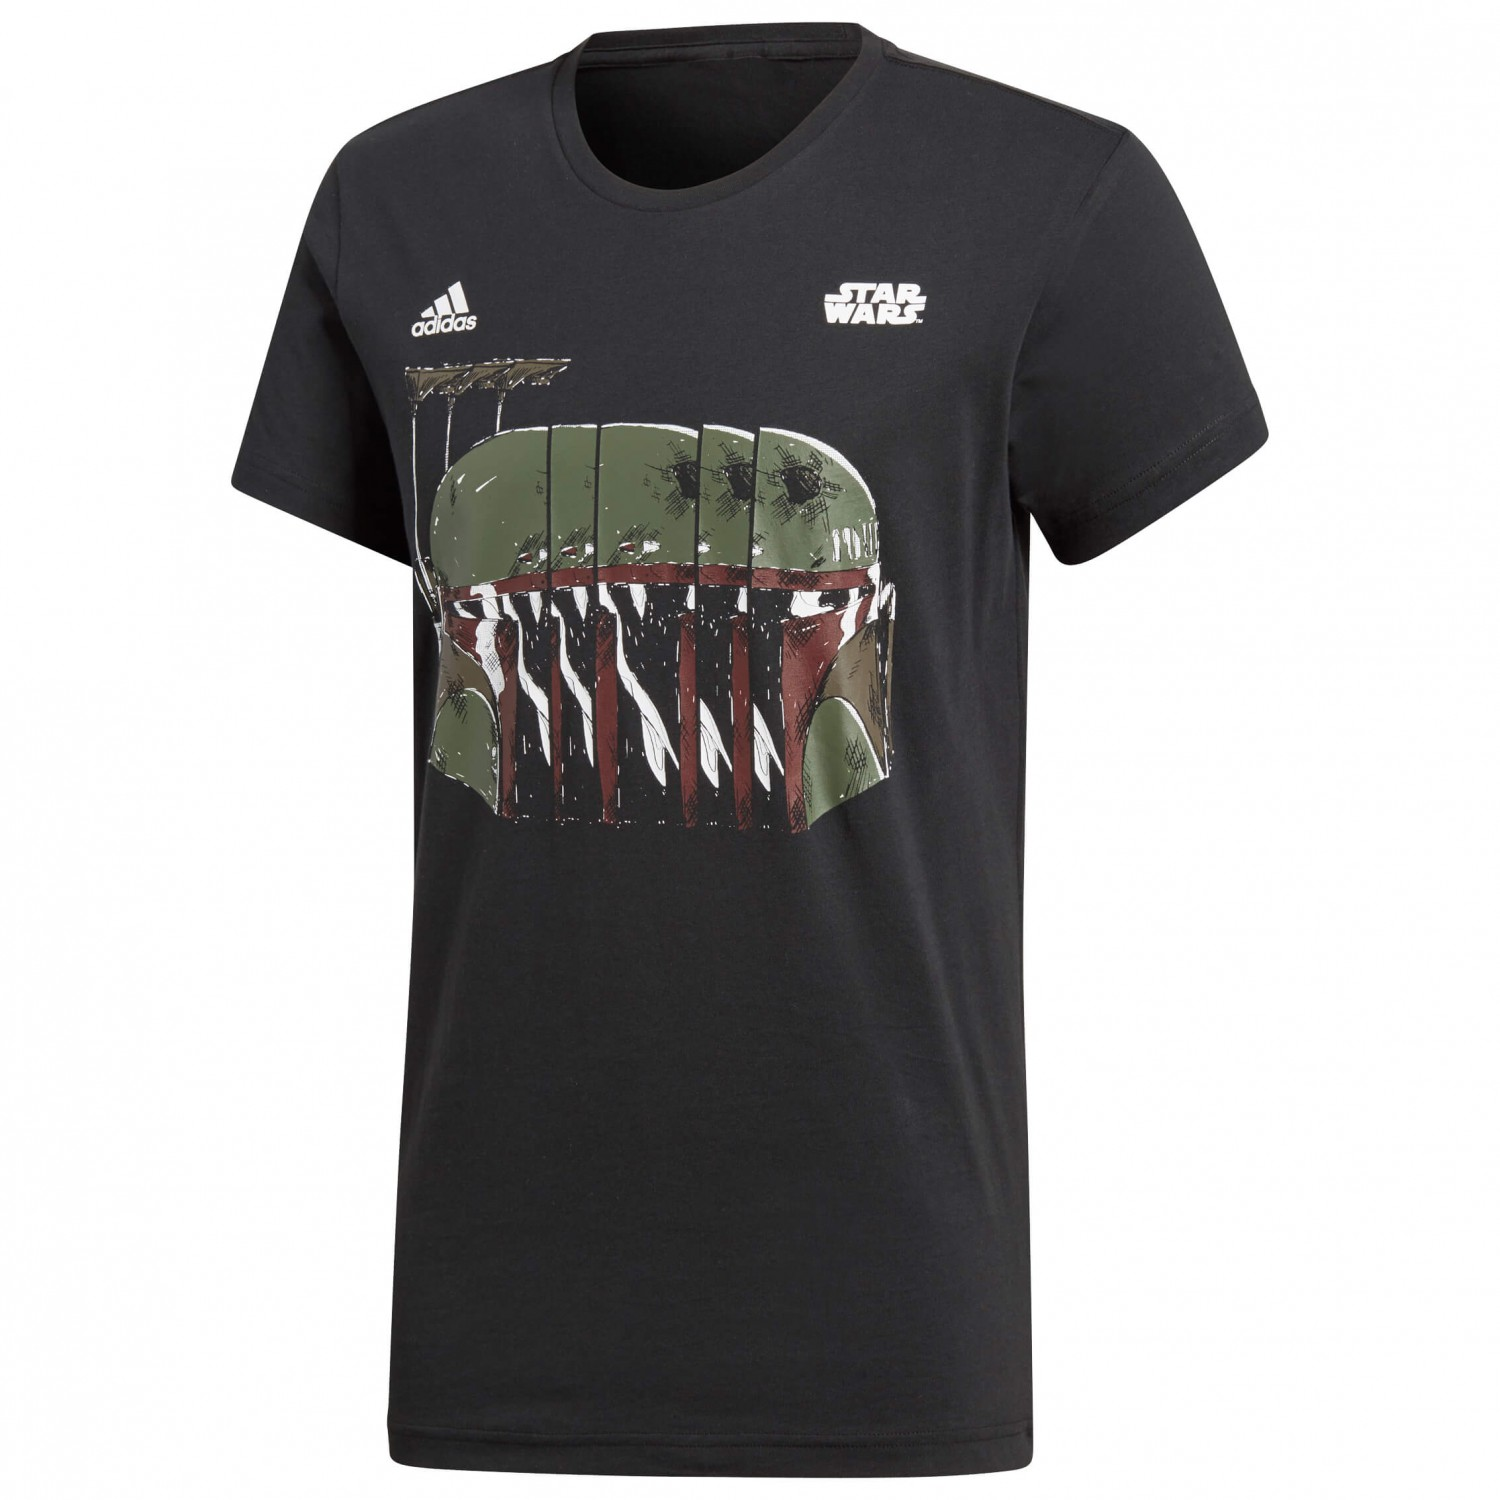 adidas boba fett t shirt herren online kaufen. Black Bedroom Furniture Sets. Home Design Ideas